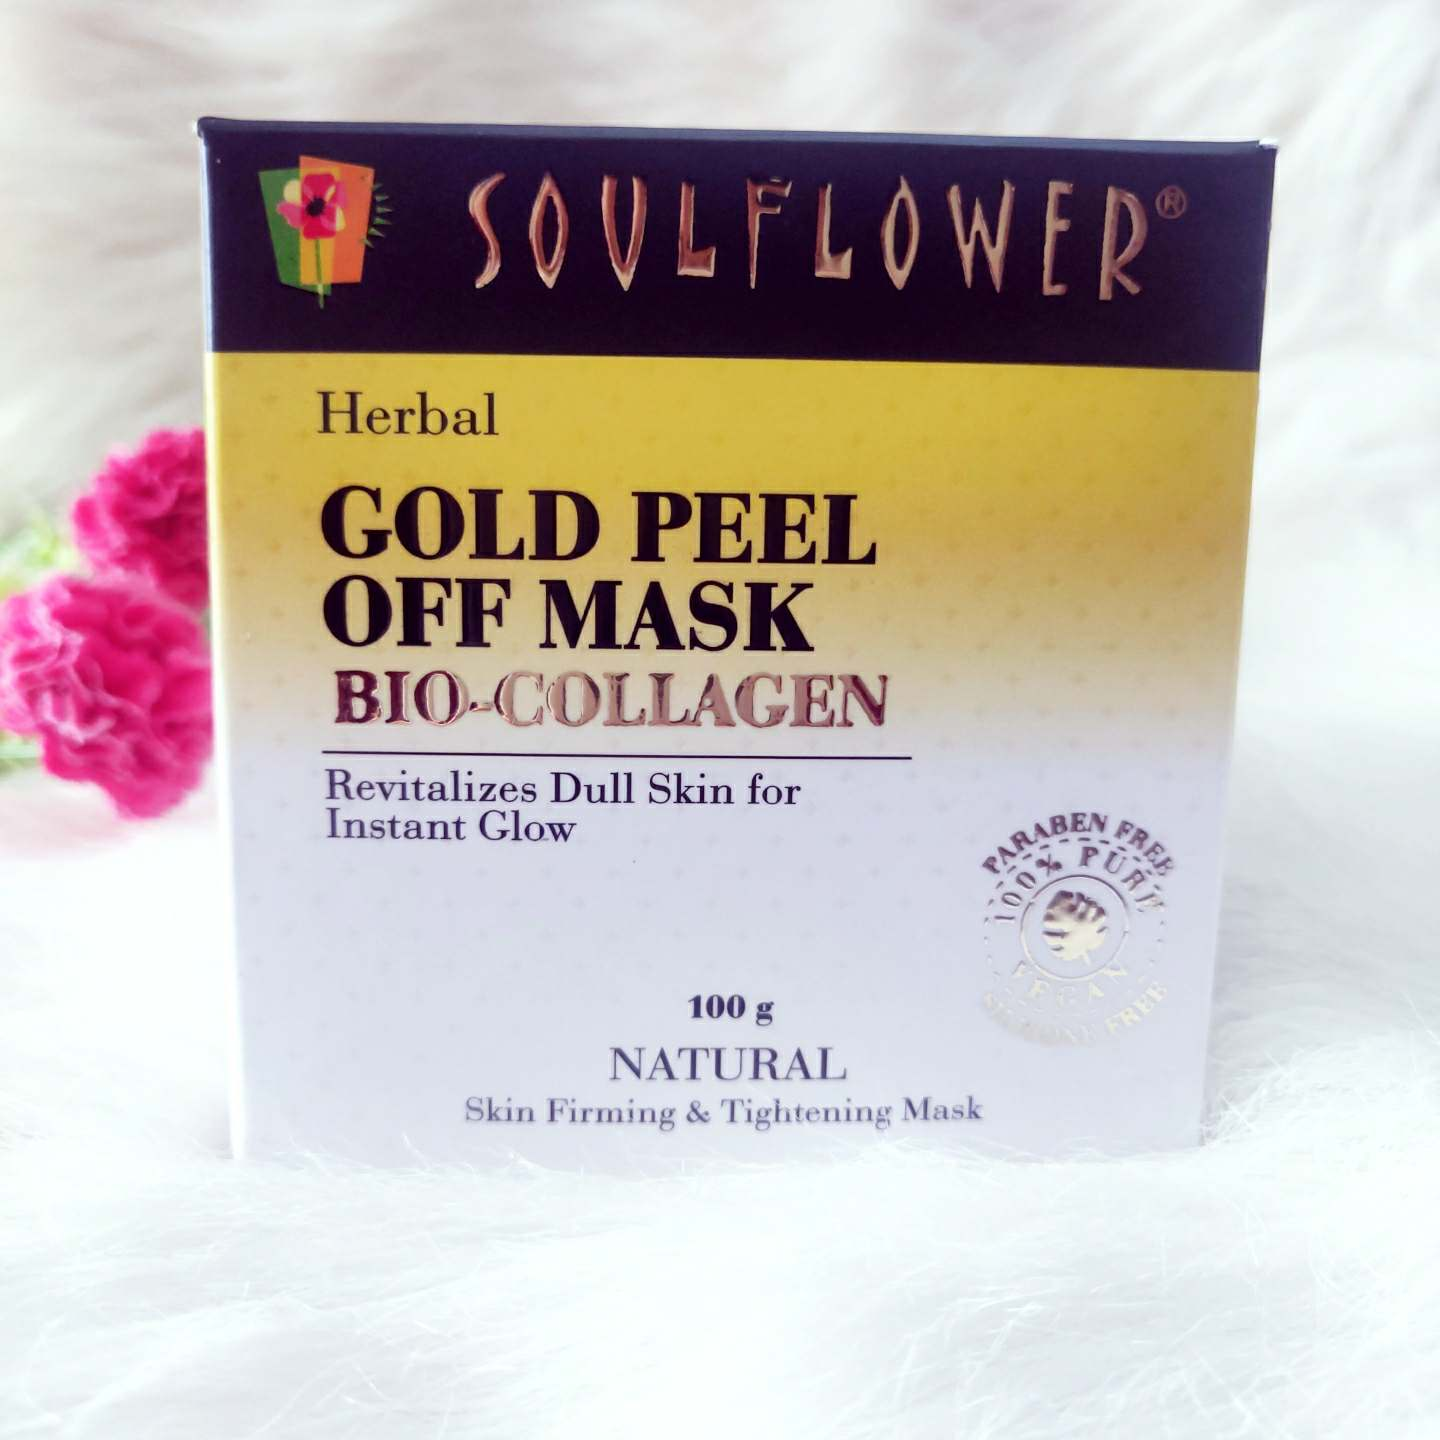 SOULFLOWER BIO COLLAGEN GOLD PEEL-OFF MASK REVIEW